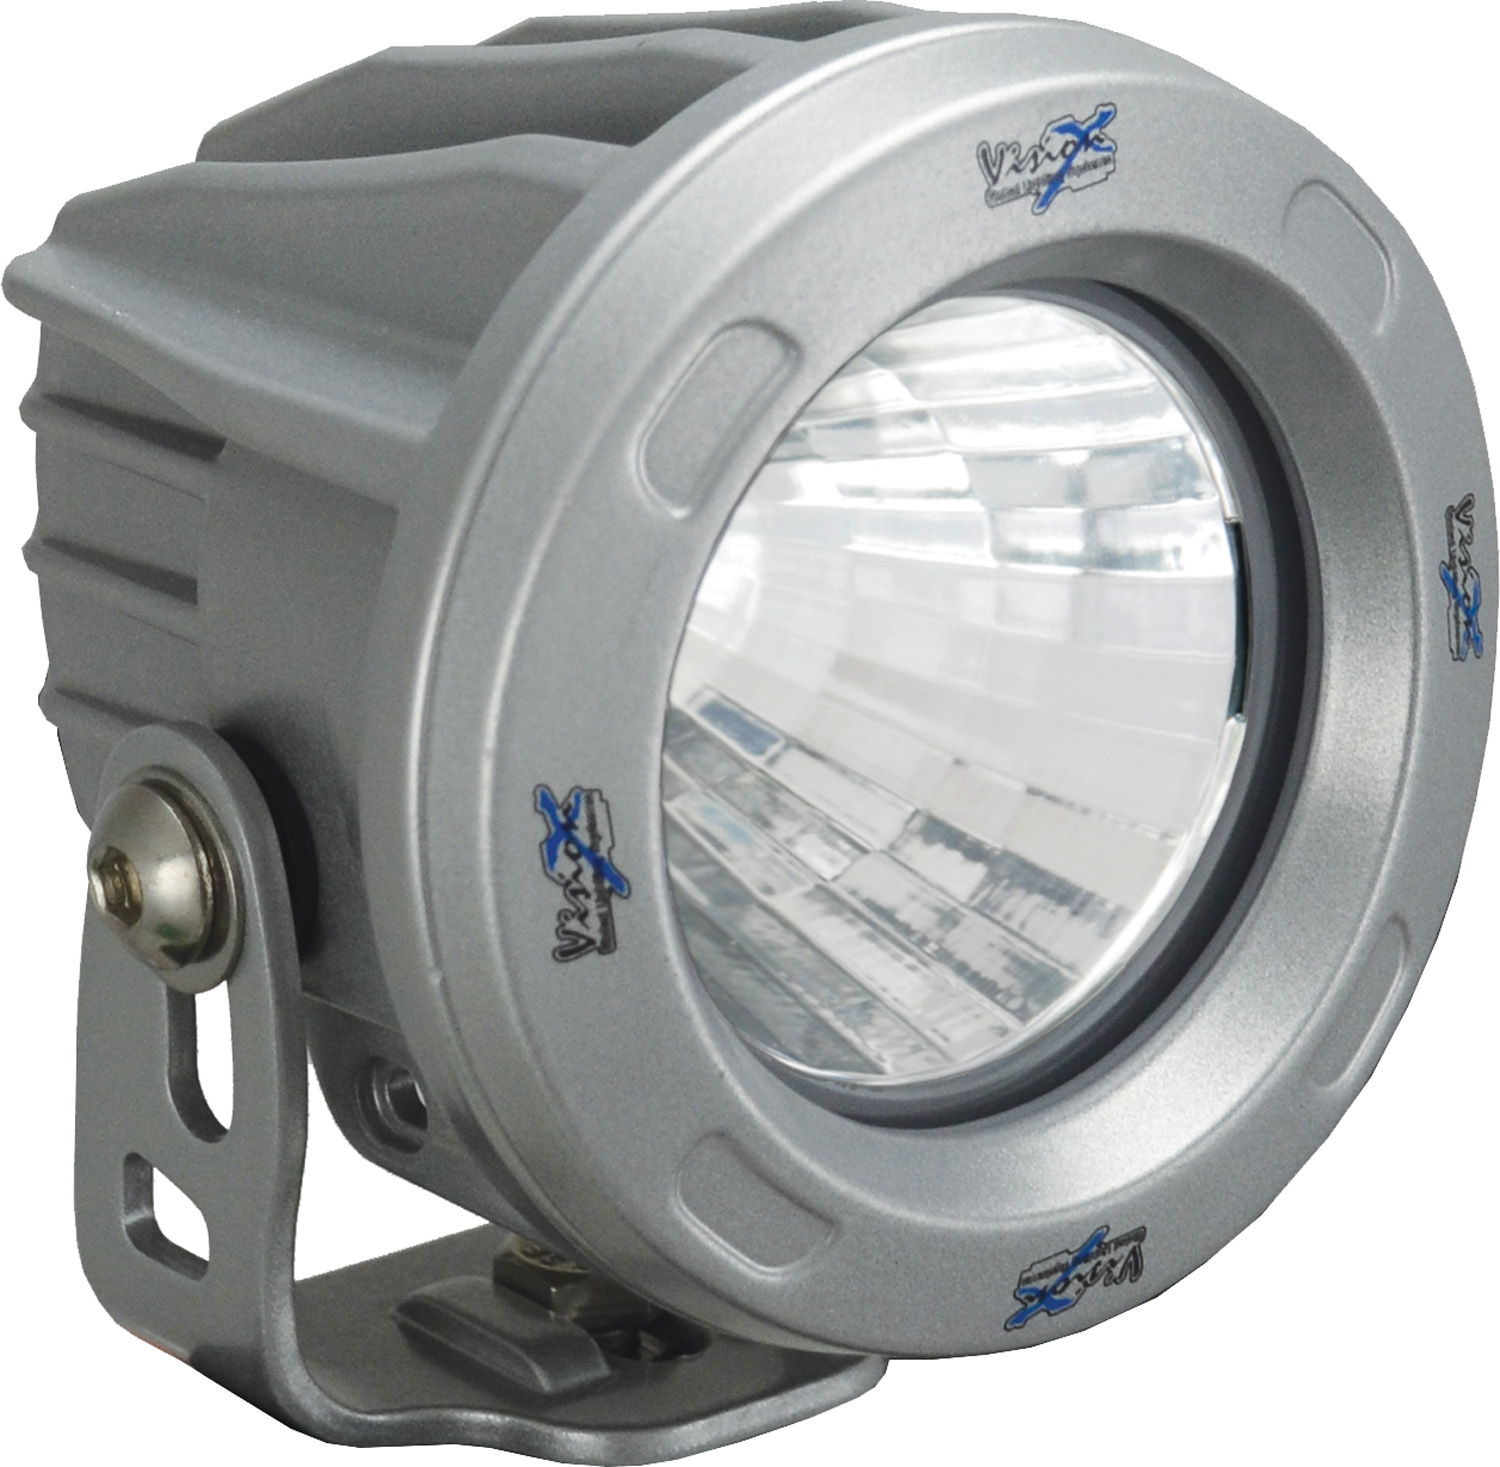 OPTIMUS ROUND SILVER 1 10W LED 60ç FLOOD